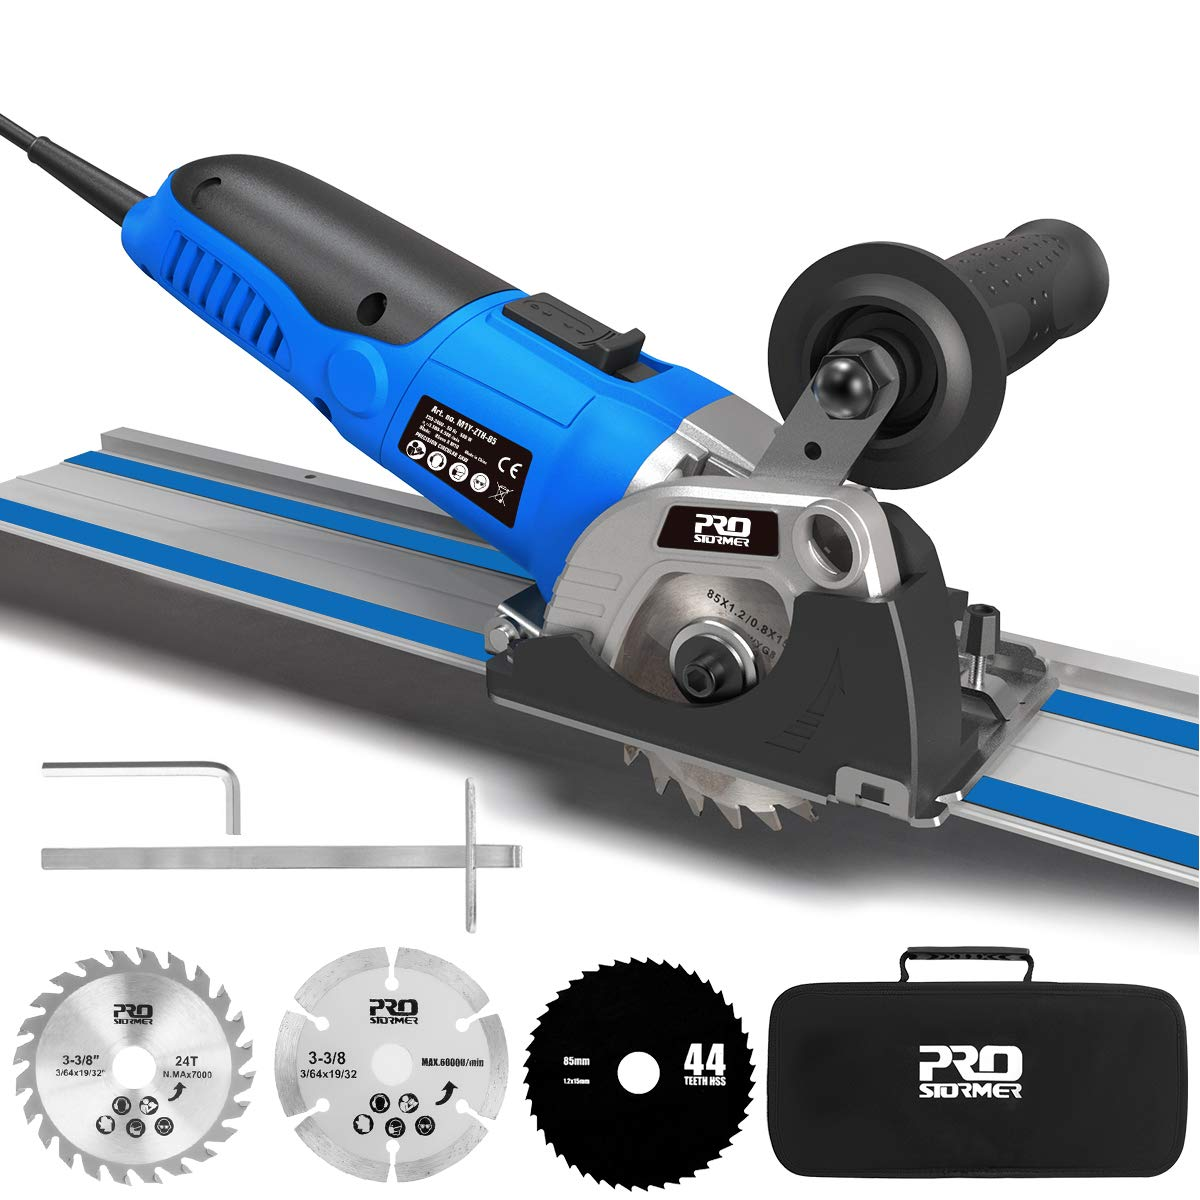 Mini Circular Saw Variable Speed, PROSTORMER 3-3/8 Compact Circular Saw with 2 x15 Guide Rails, Plunge Cut Track Saw with 3 Blades for Cutting Wood, Soft Metal, Tile and Plastic